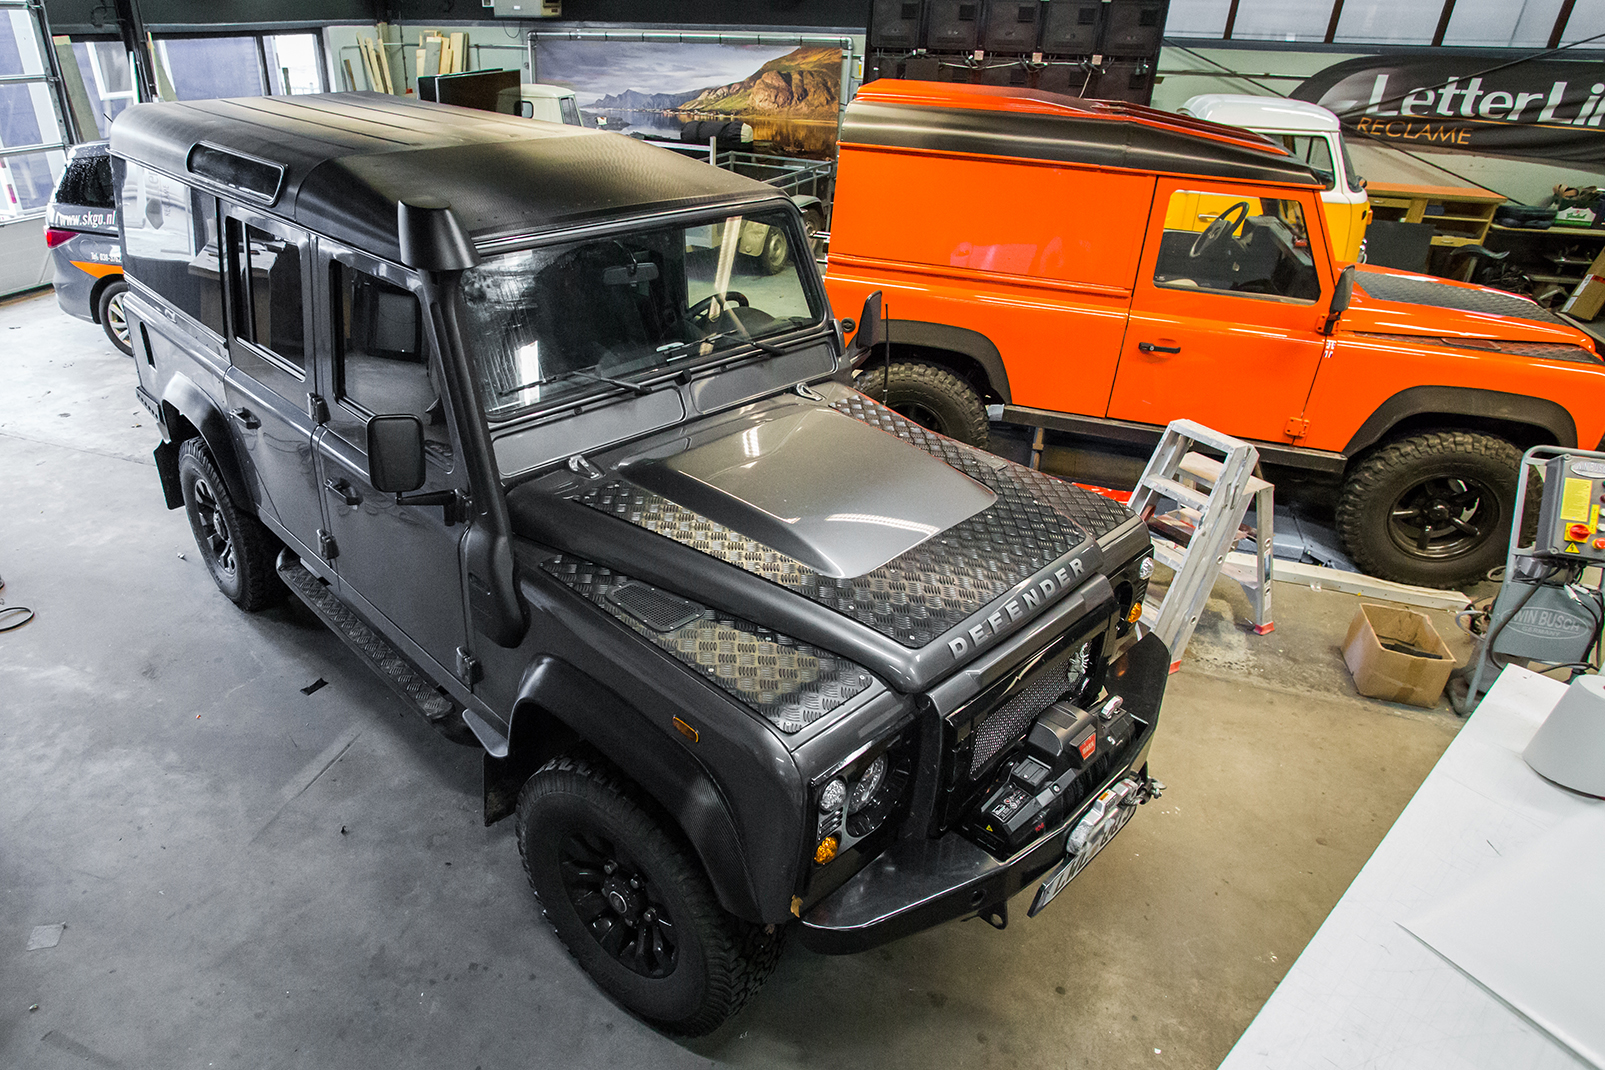 Wrap - Carwrap - carbon - landrover- defender - letterline - epe - reclame - reclamebedrijf- marketing - online - offline